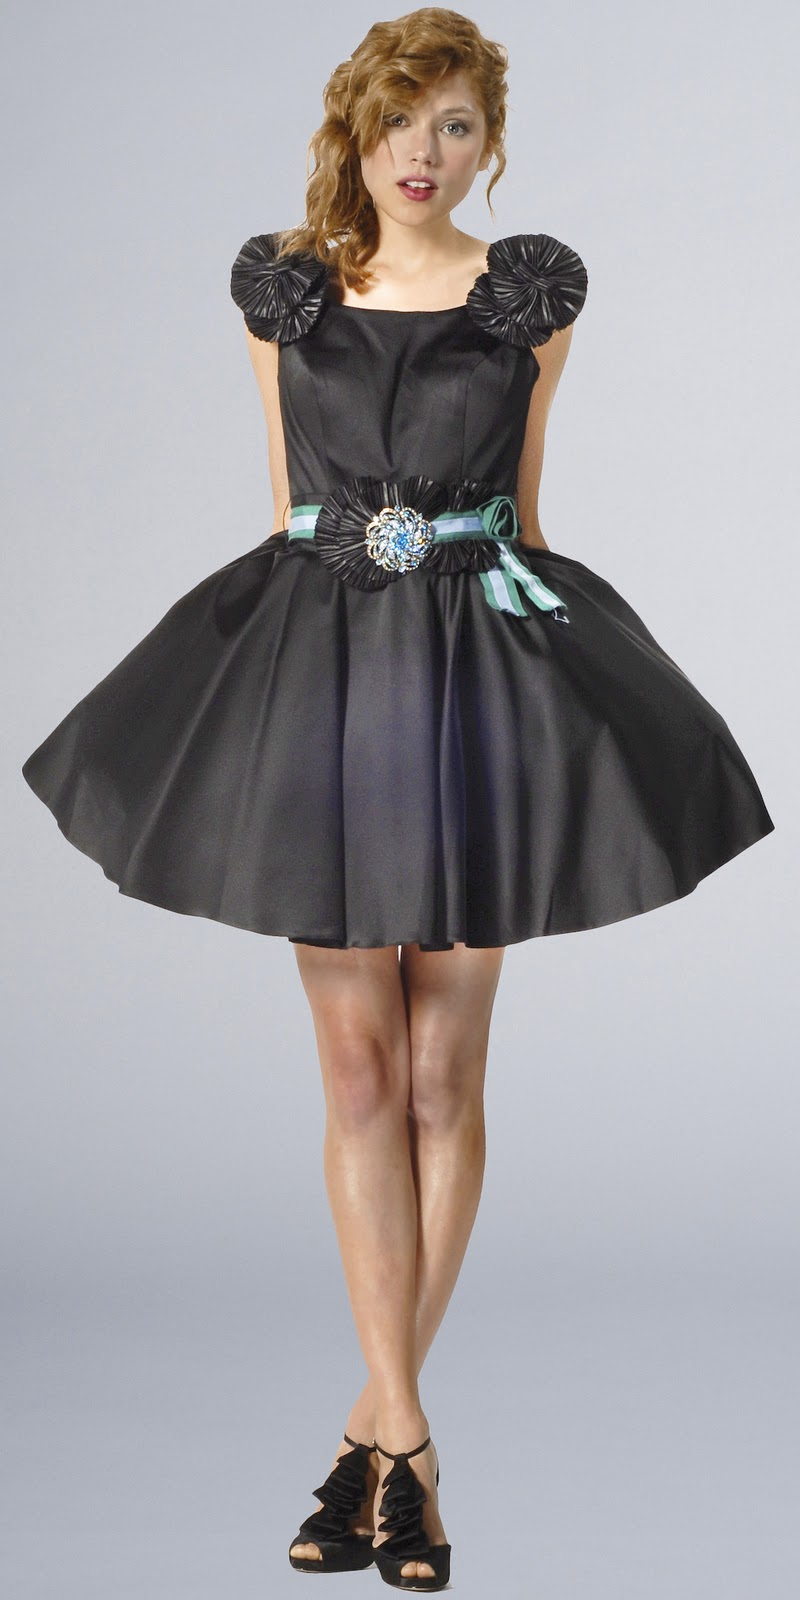 Download this Fall Party Dress picture